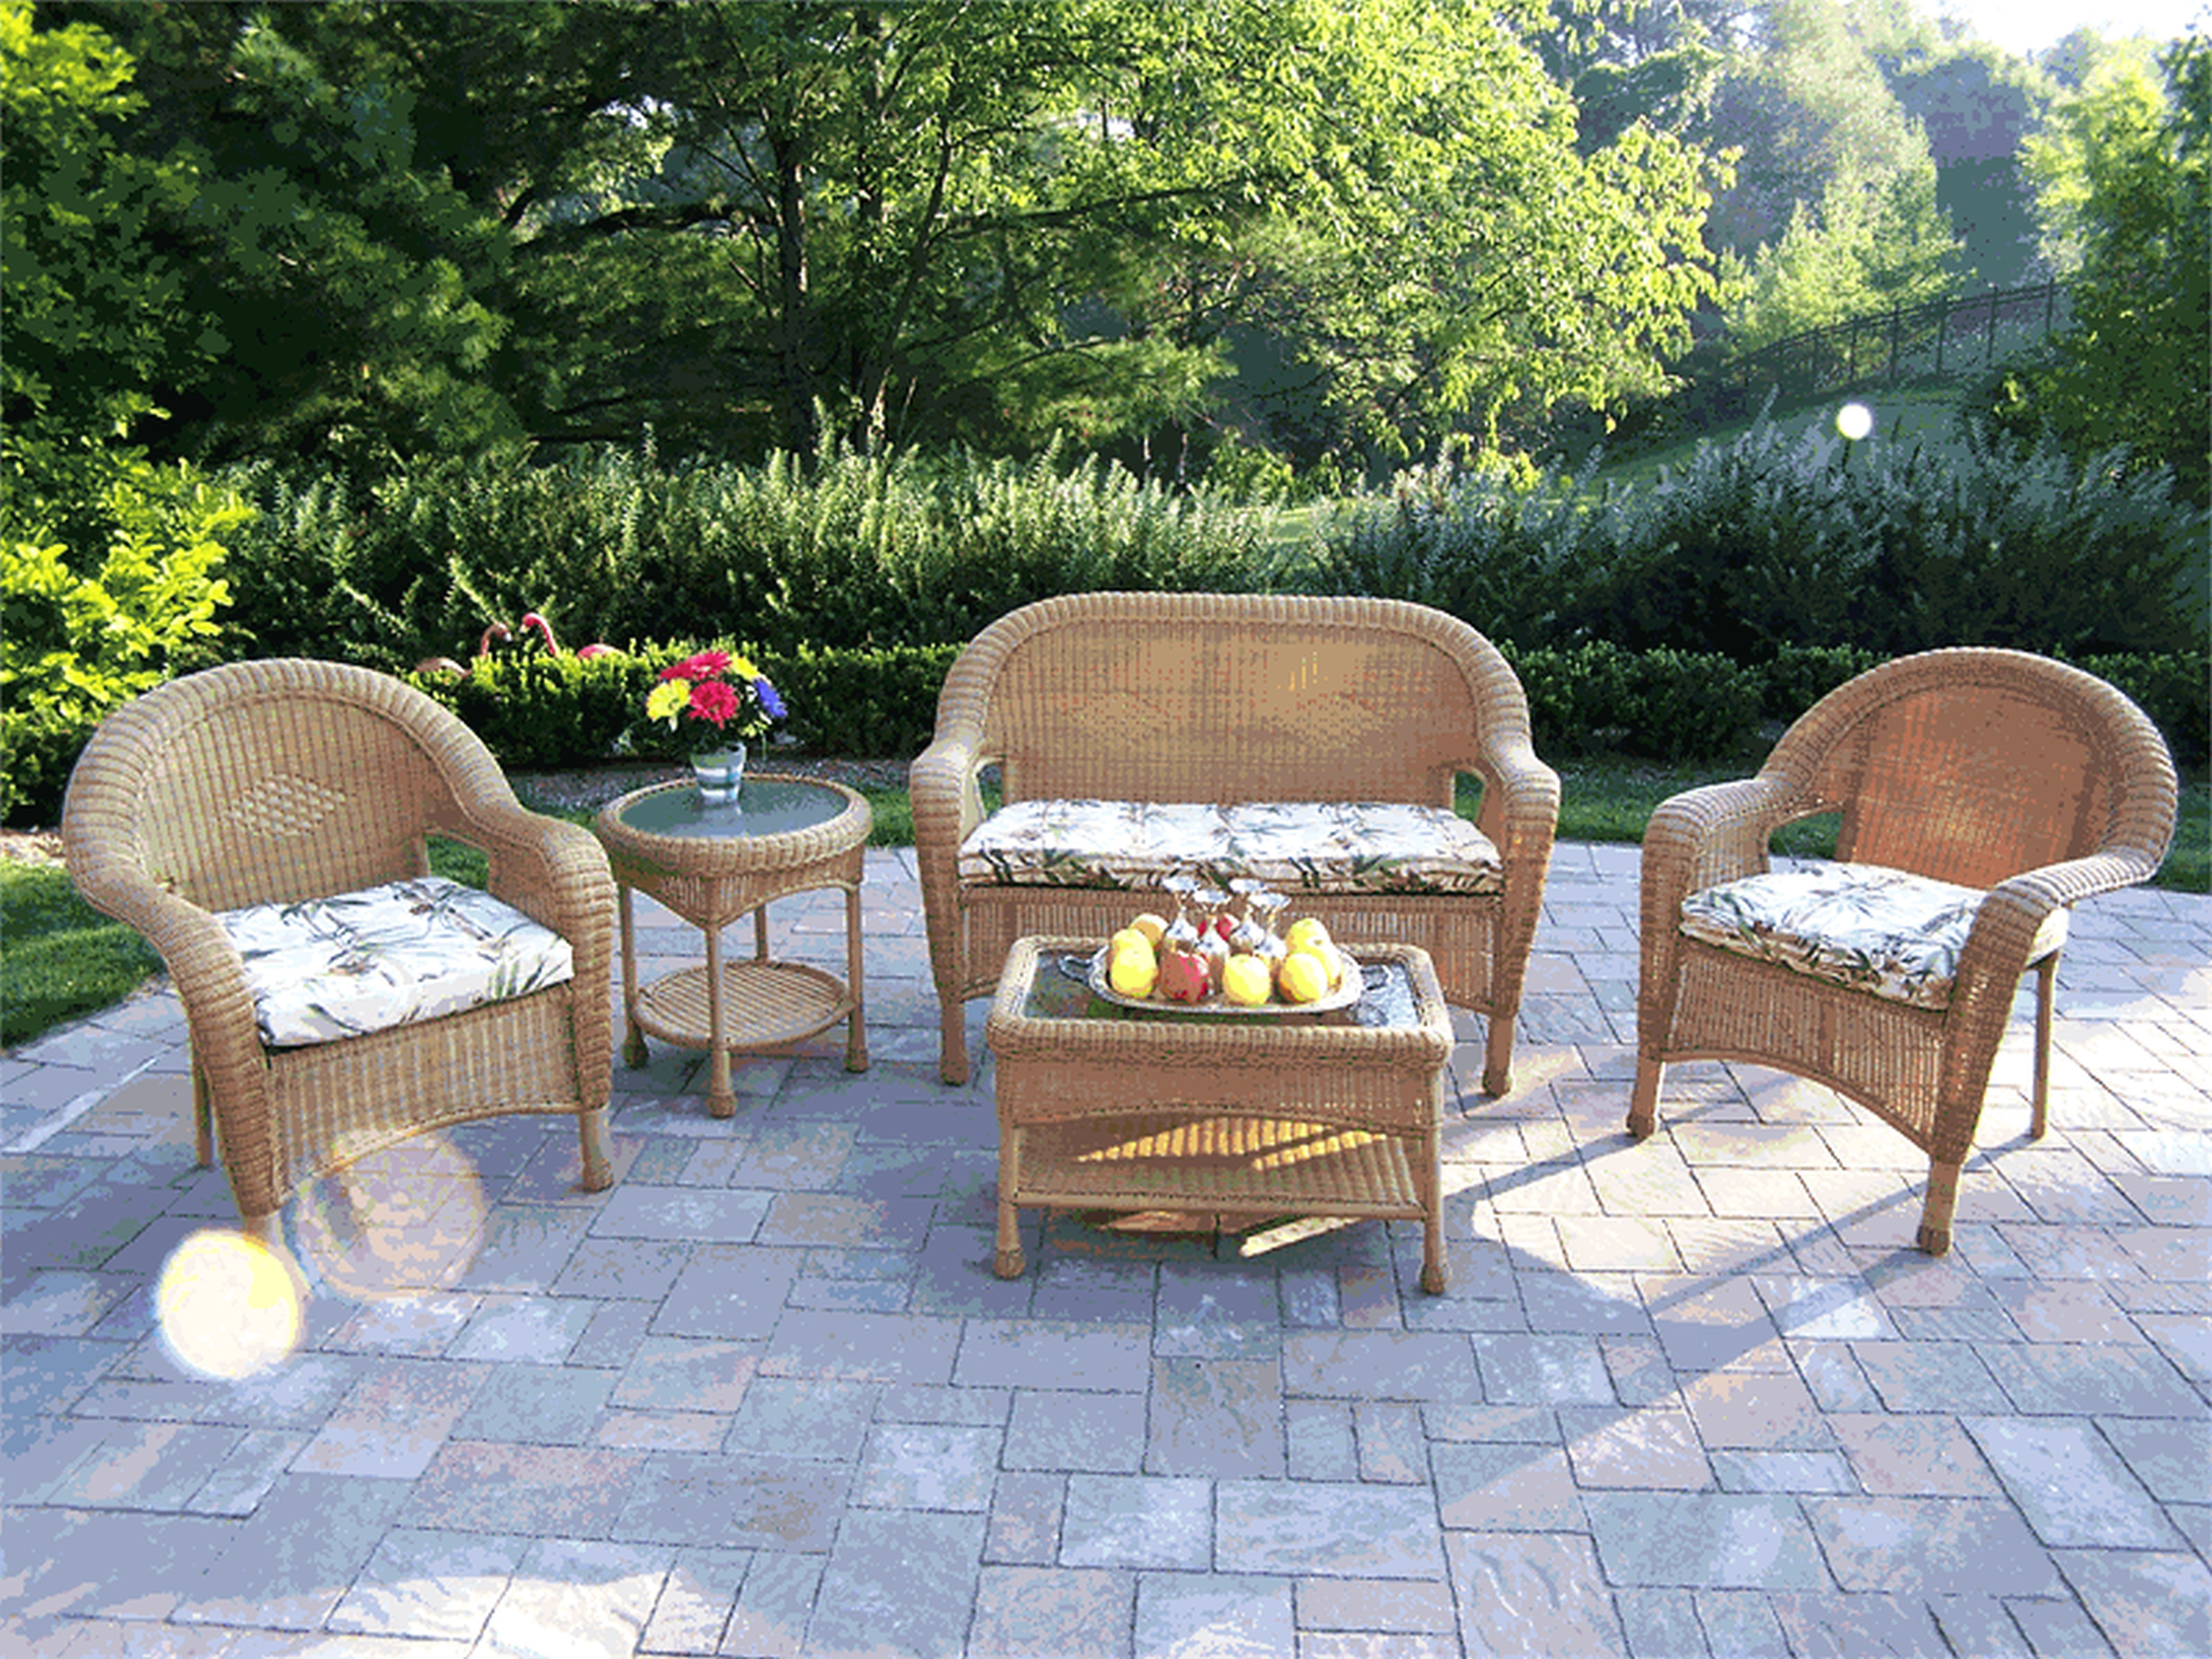 Merveilleux New Wicker Patio Sets On Sale , Inspirational Wicker Patio Sets On Sale 76  Home Design Ideas With Wicker Patio Sets On Sale ...